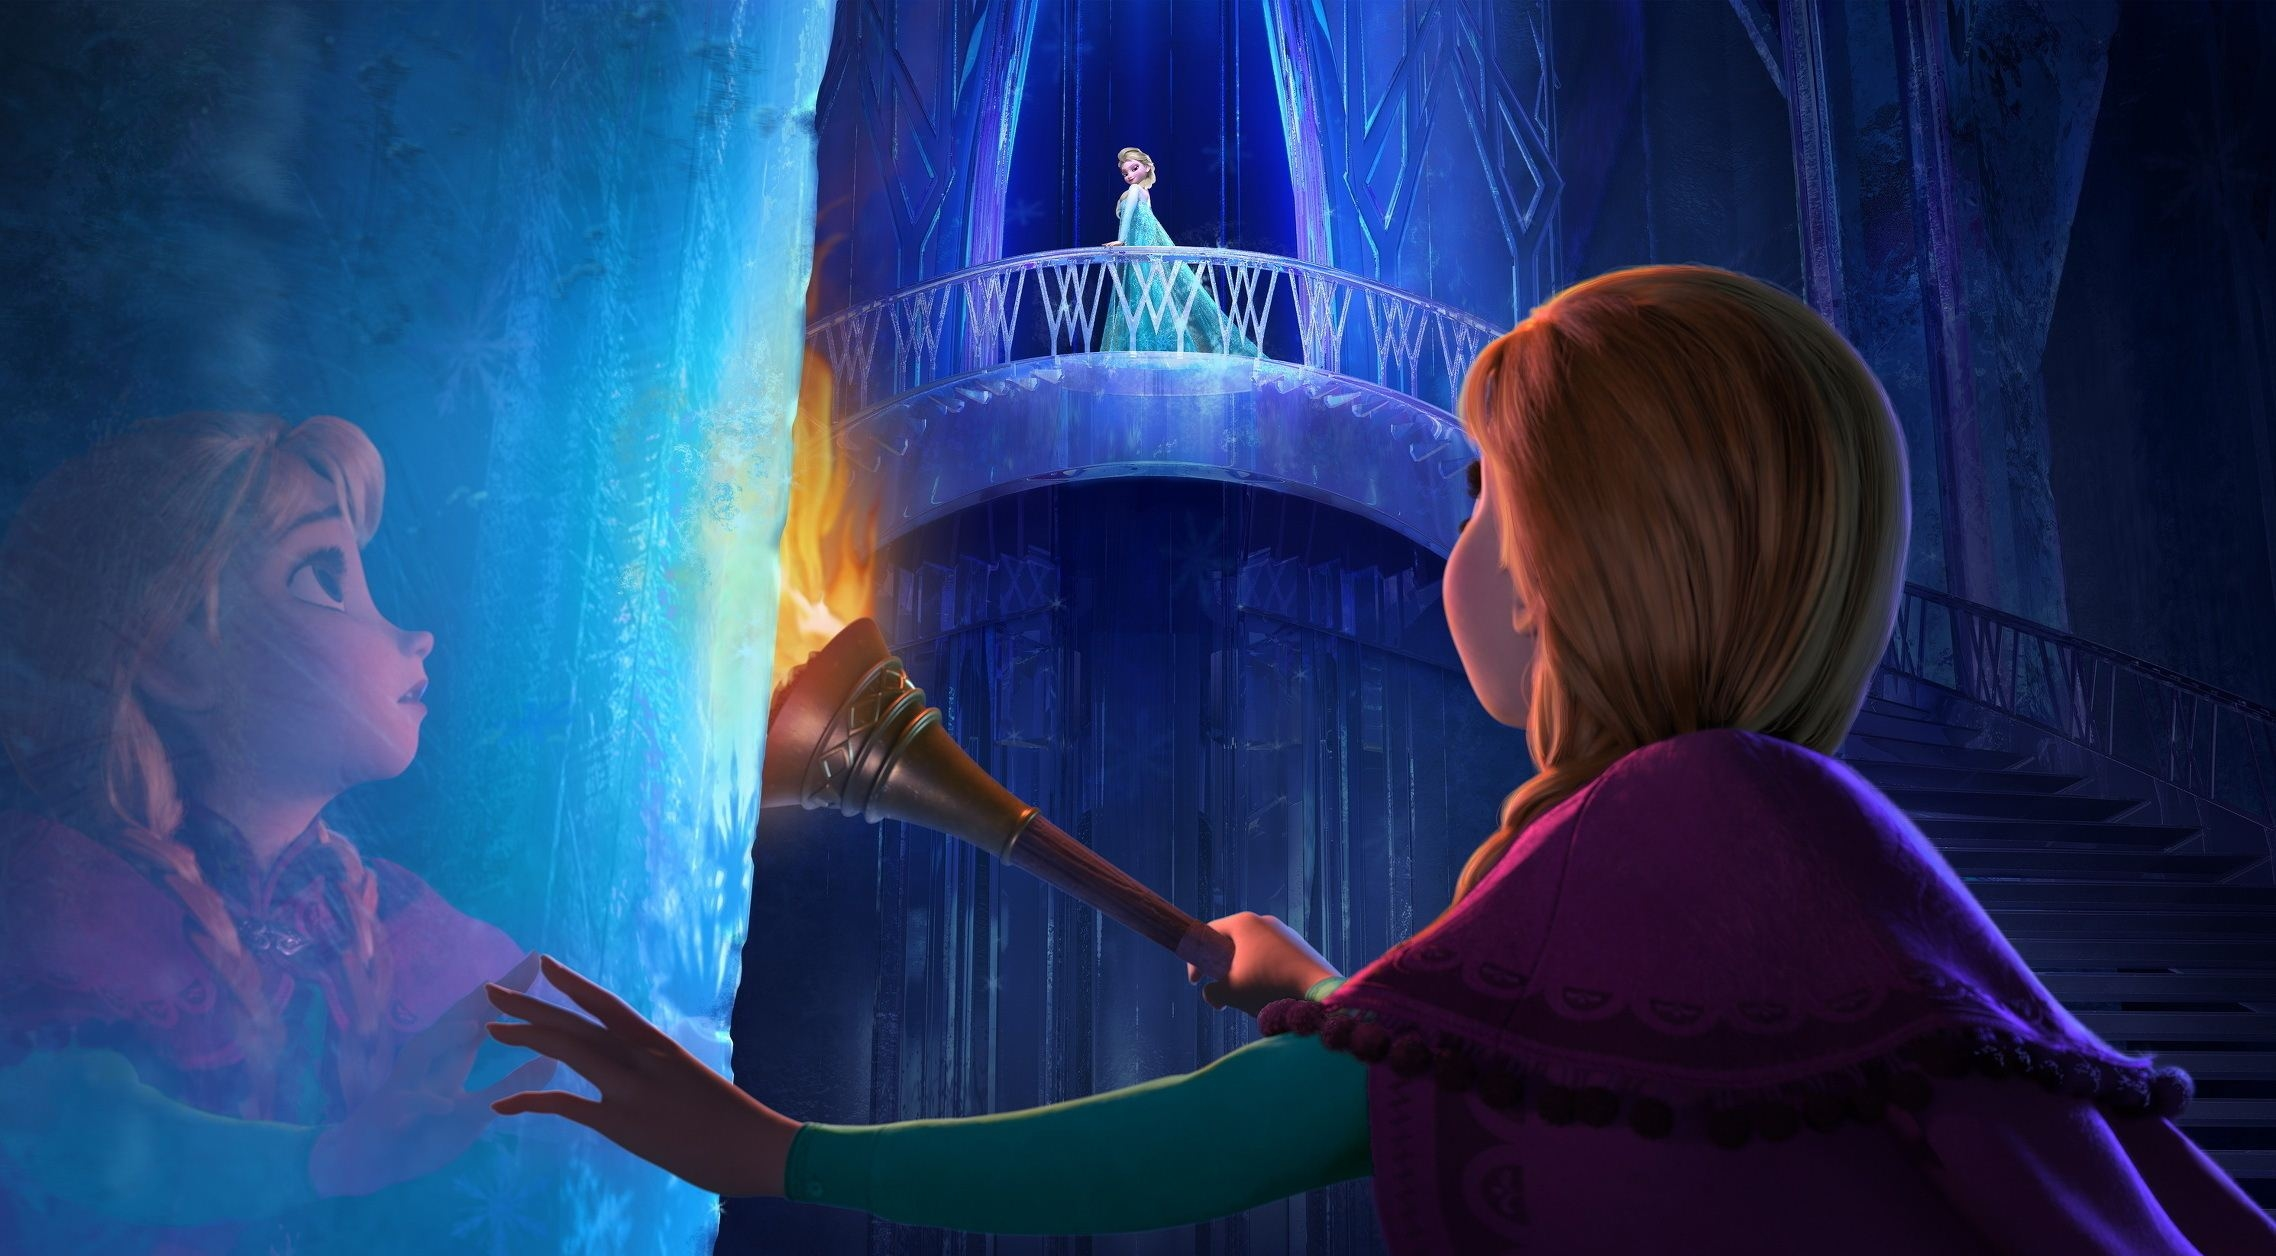 Fan-Made Musical Reprise for 'Frozen' Will Make You Melt [Video] – /Film